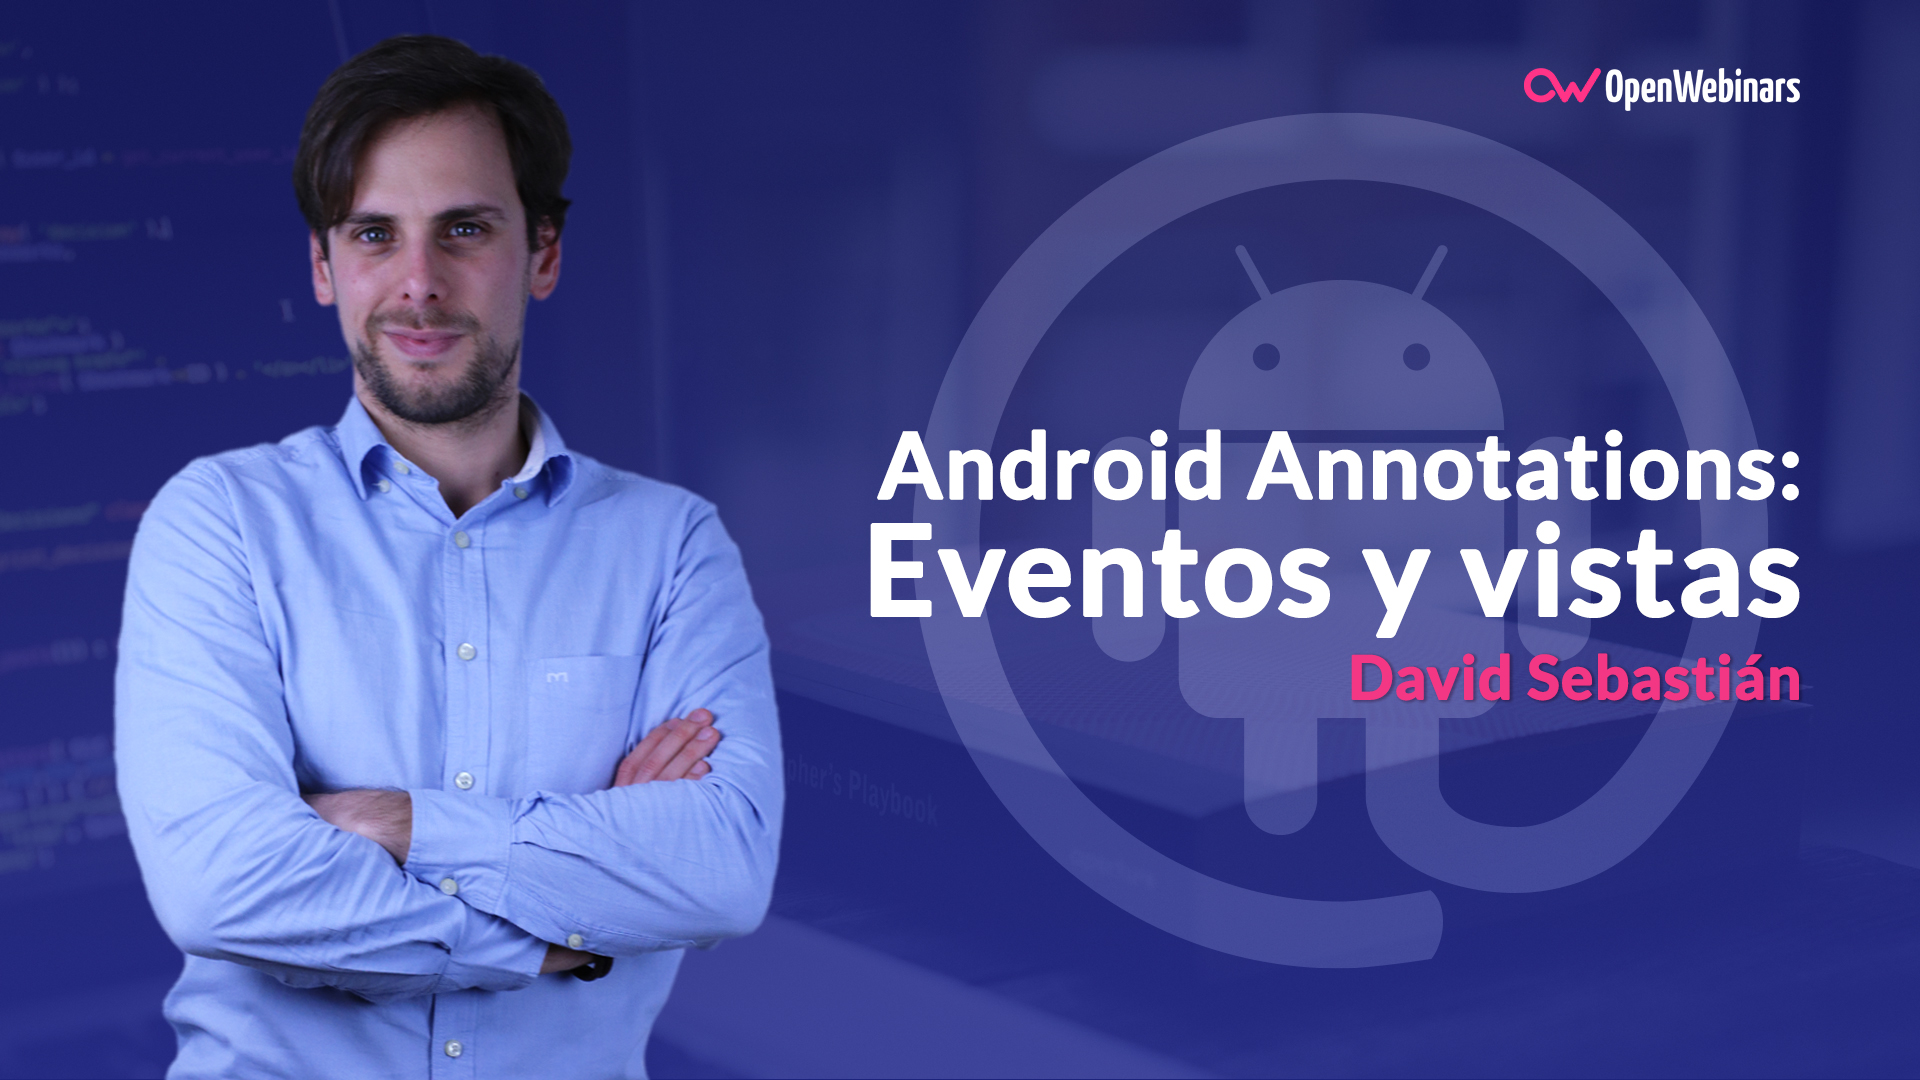 android-annotations-eventos-vistas